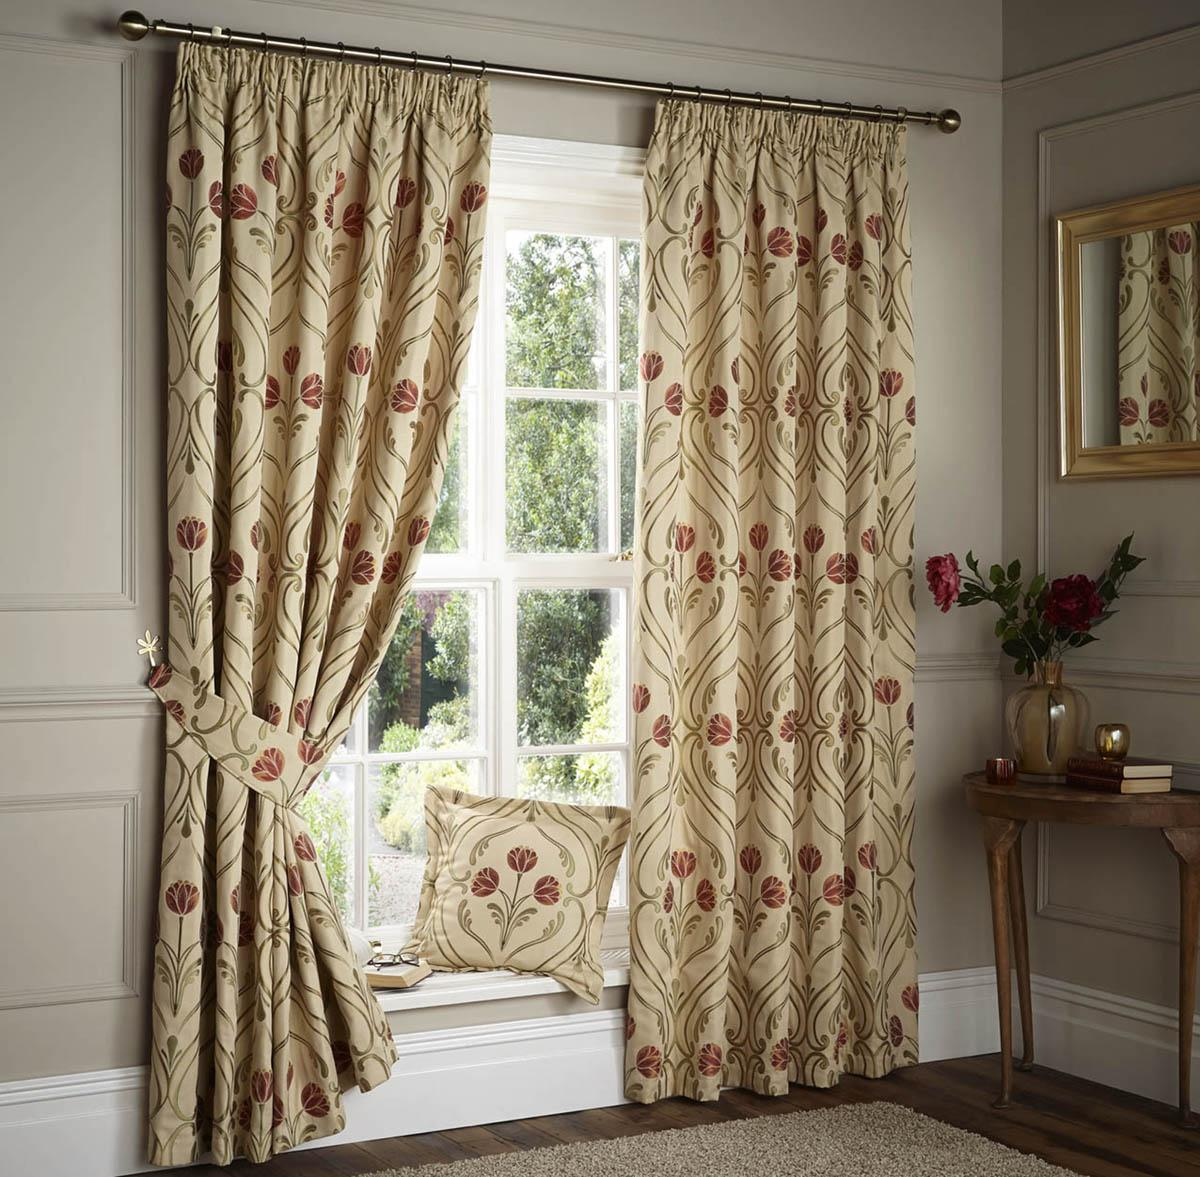 Nouveau Lined Curtains Terracotta Free UK Delivery